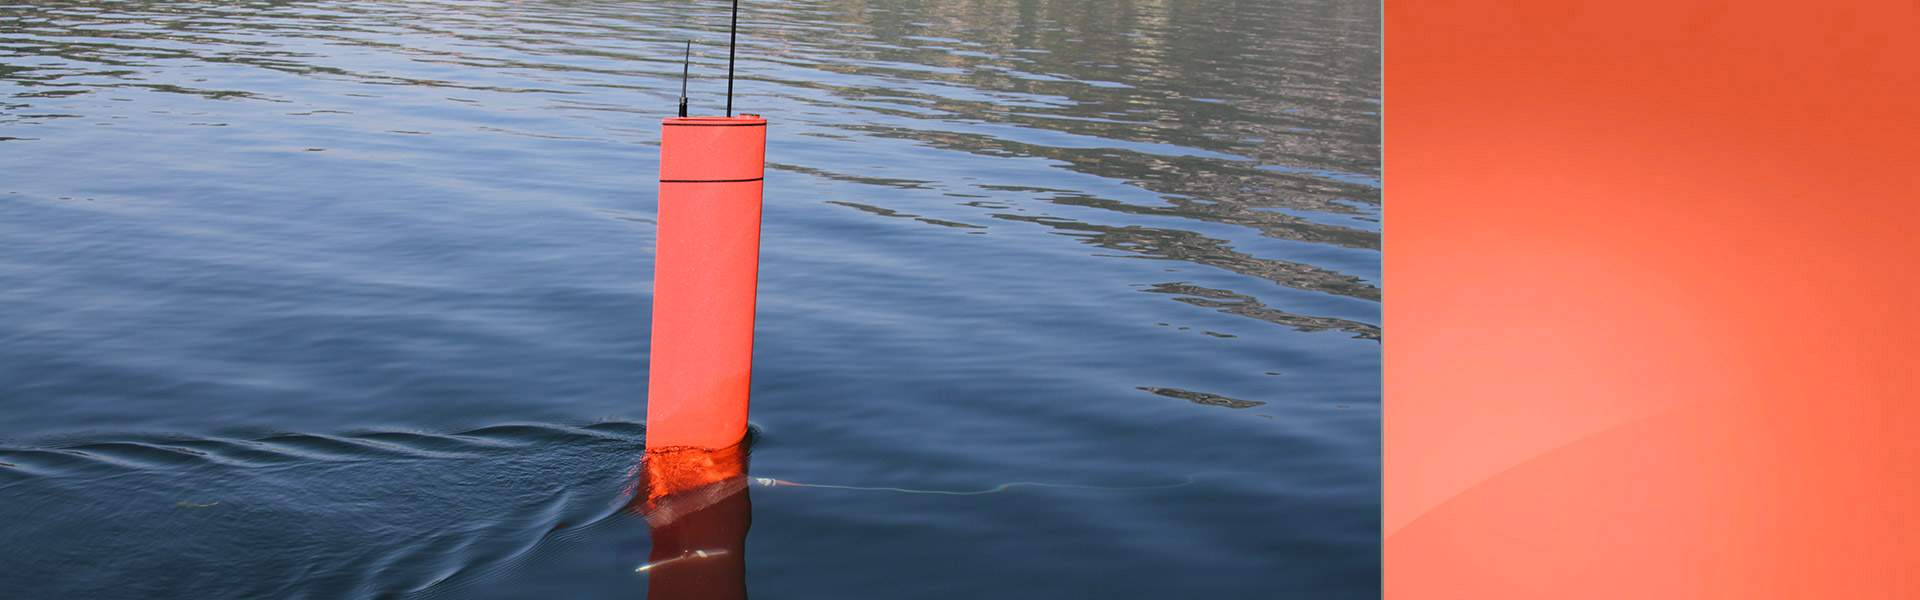 Radio Buoy wireless ROVs control